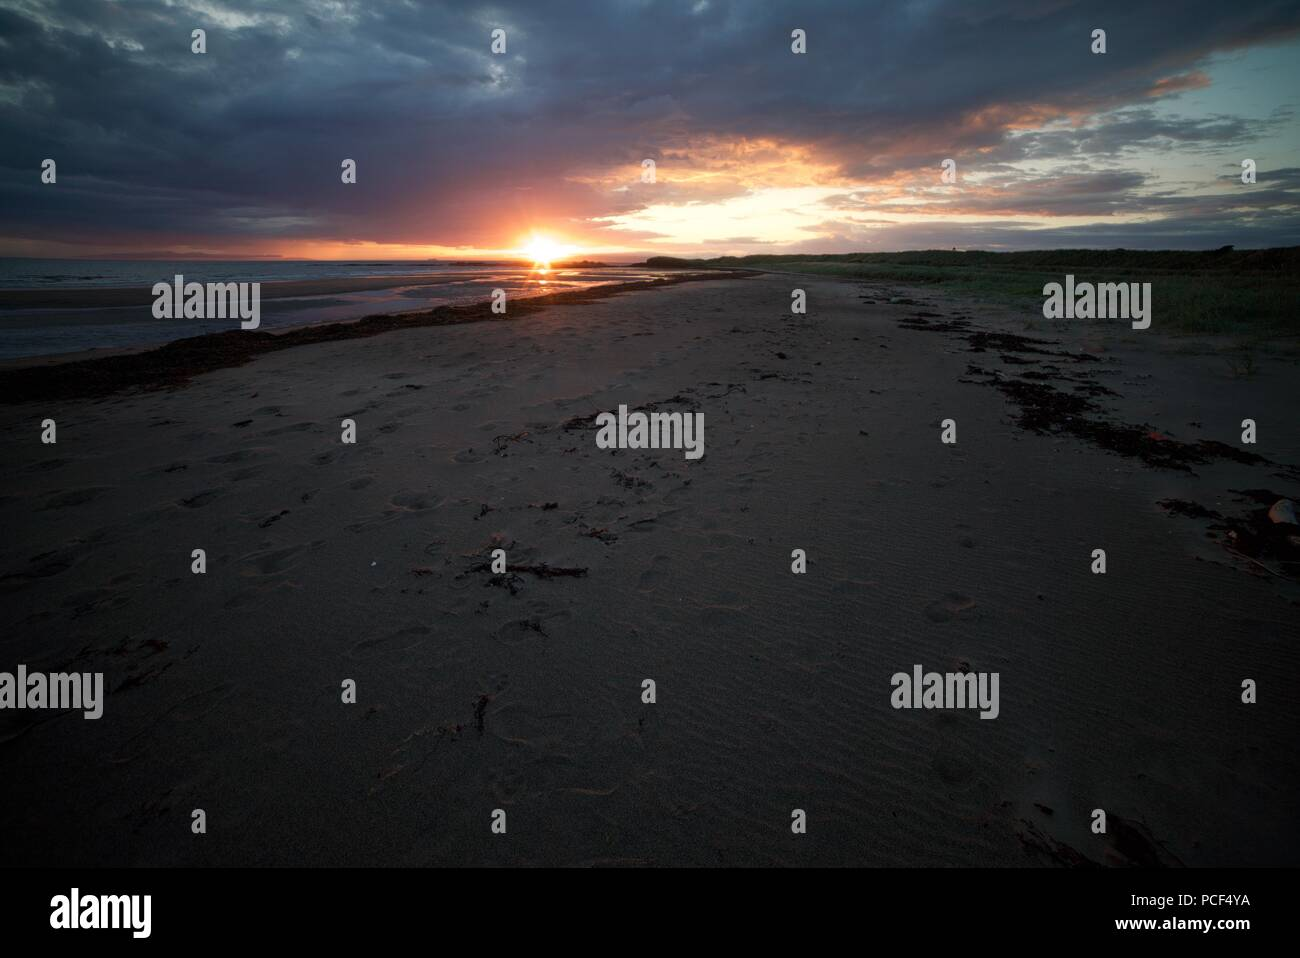 A view looking down a sandy beach with the sun setting. The sun sets on a long sandy beach with sea weed and footprints on the sand. - Stock Image